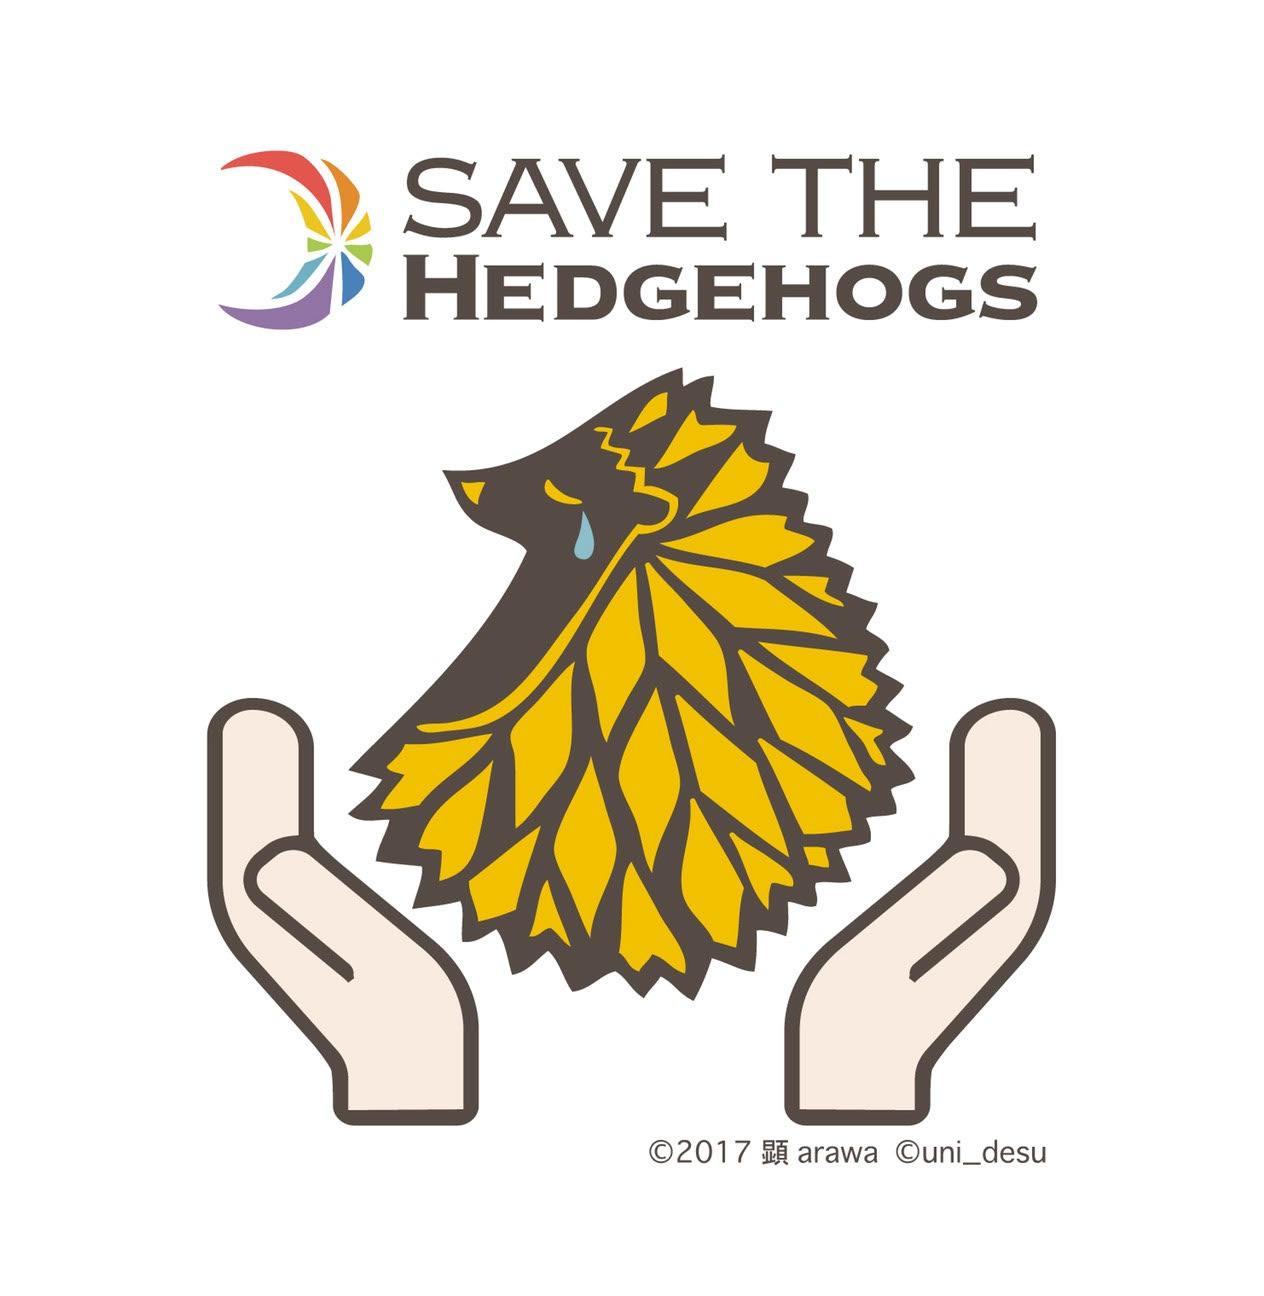 SAVE THE HEDGEHOGS